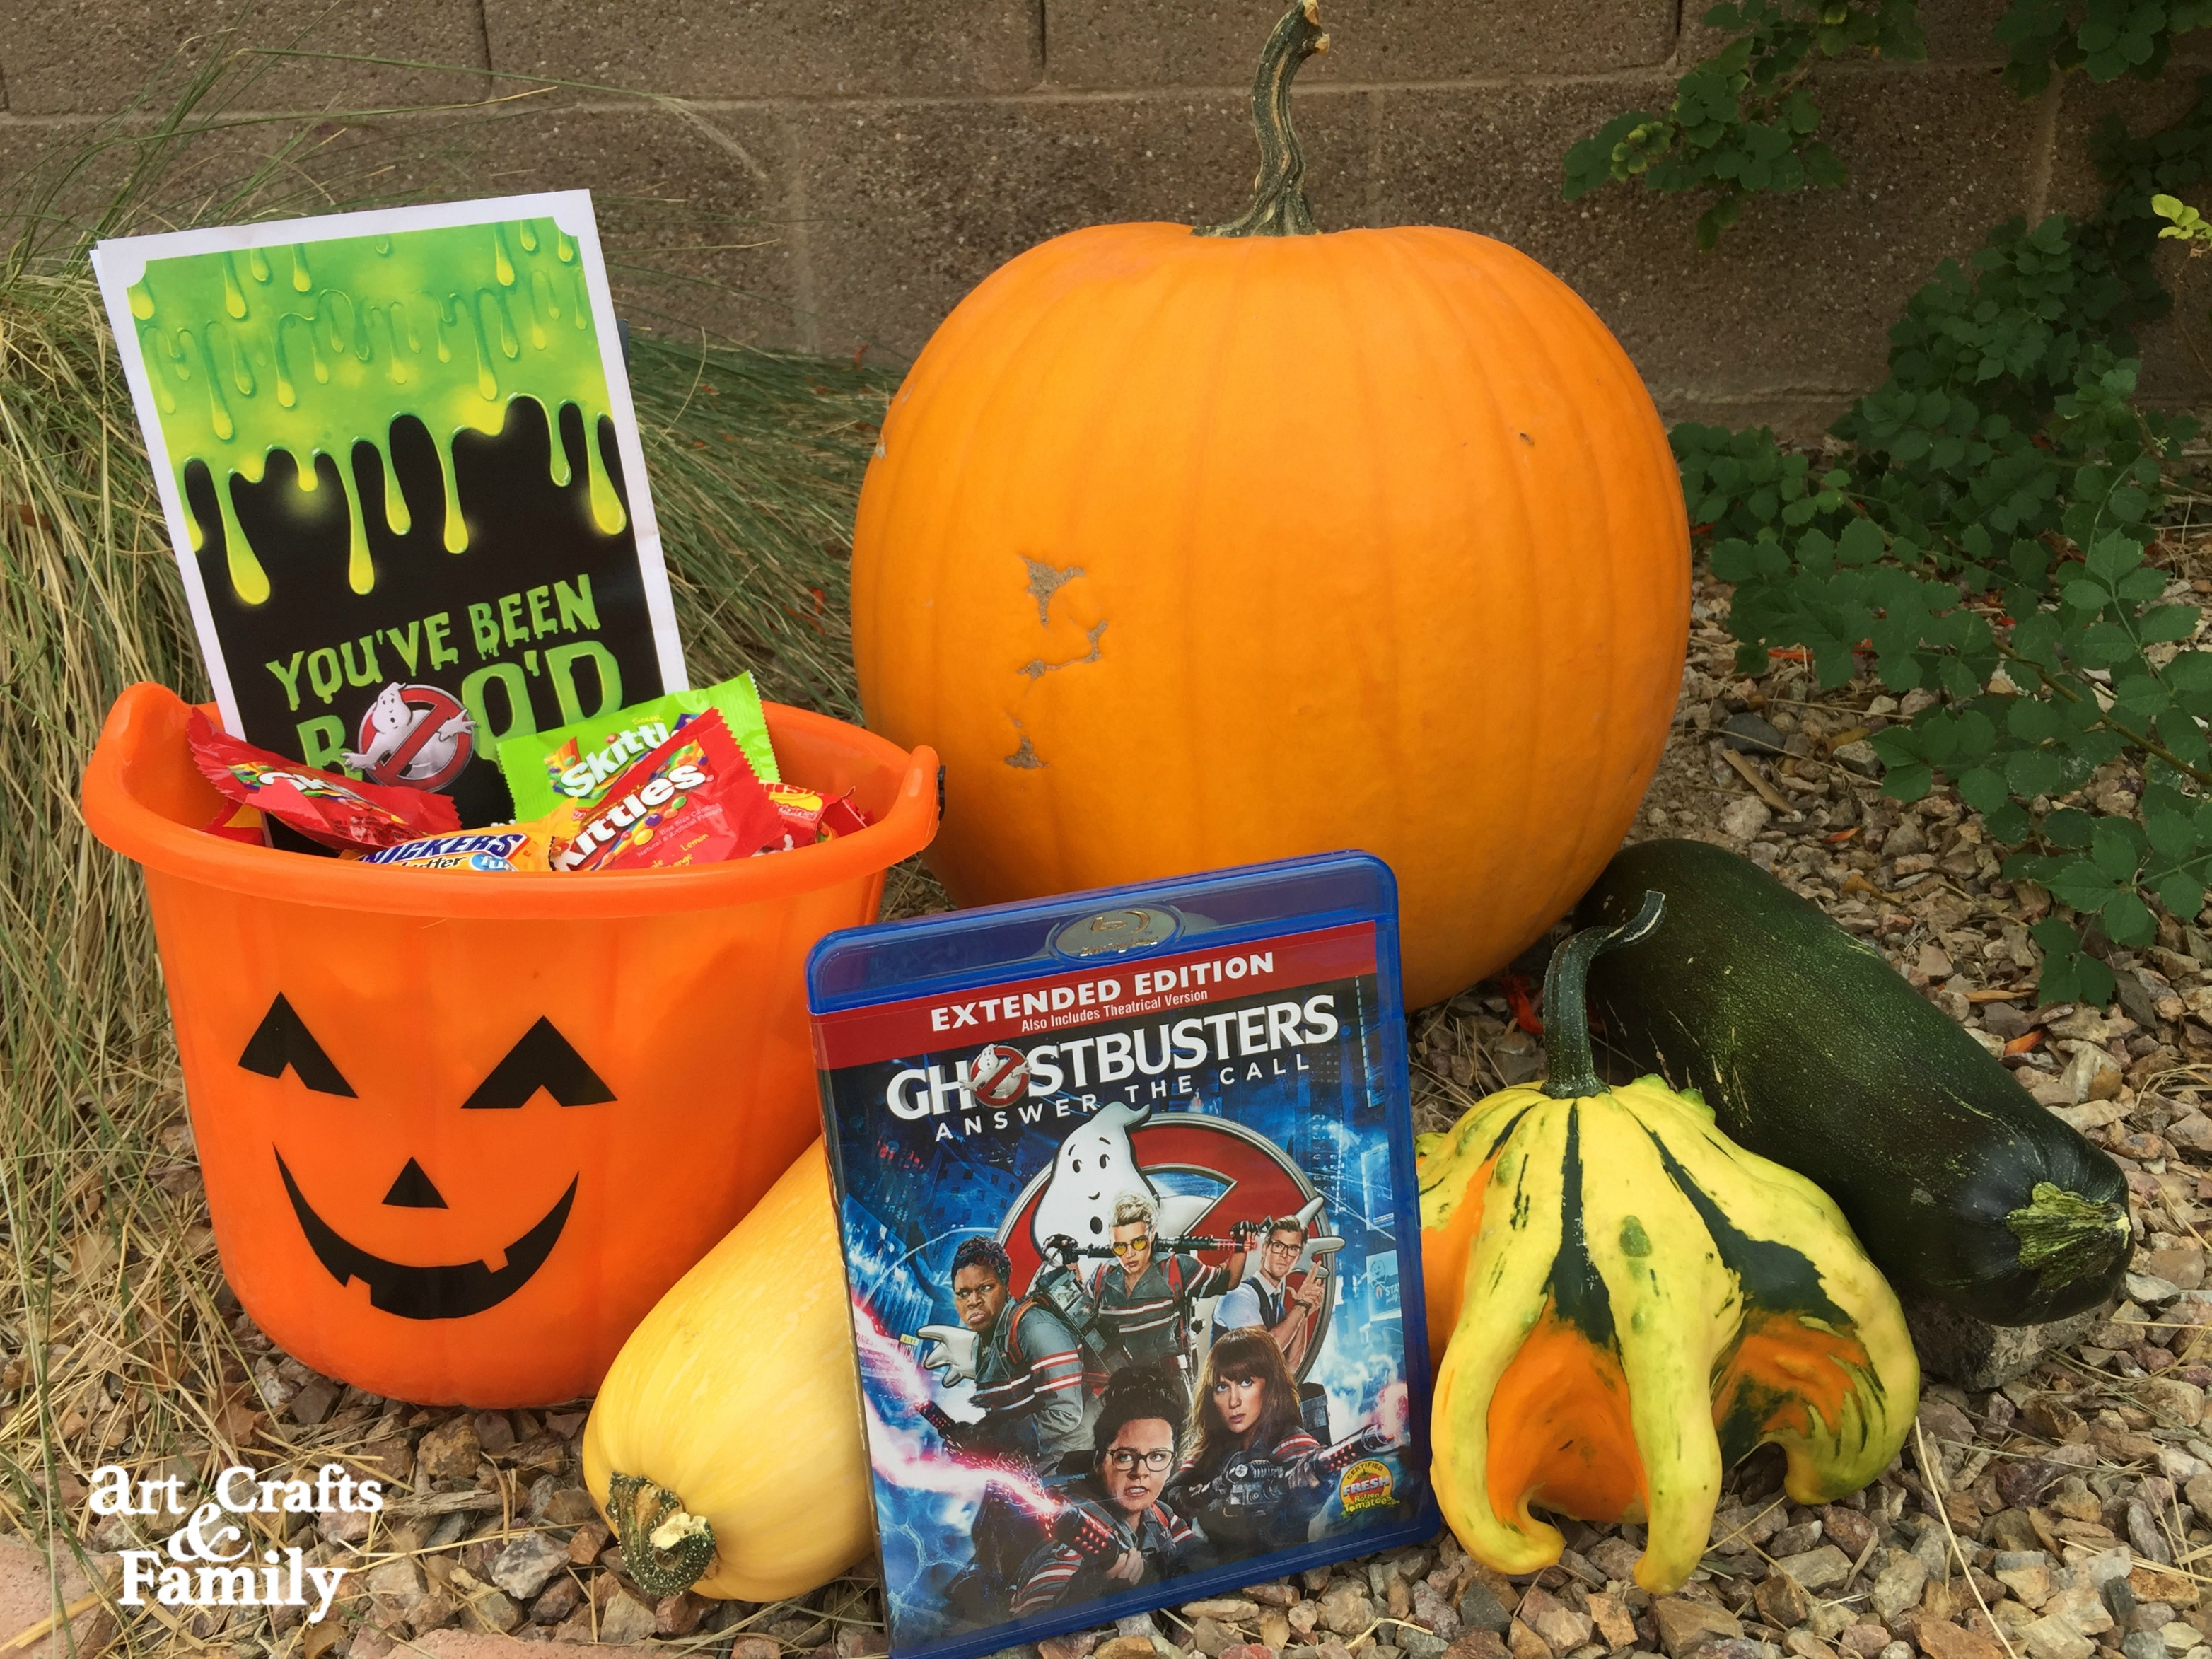 BOO someone by surprising them with a bundle of Halloween treats and good cheer.